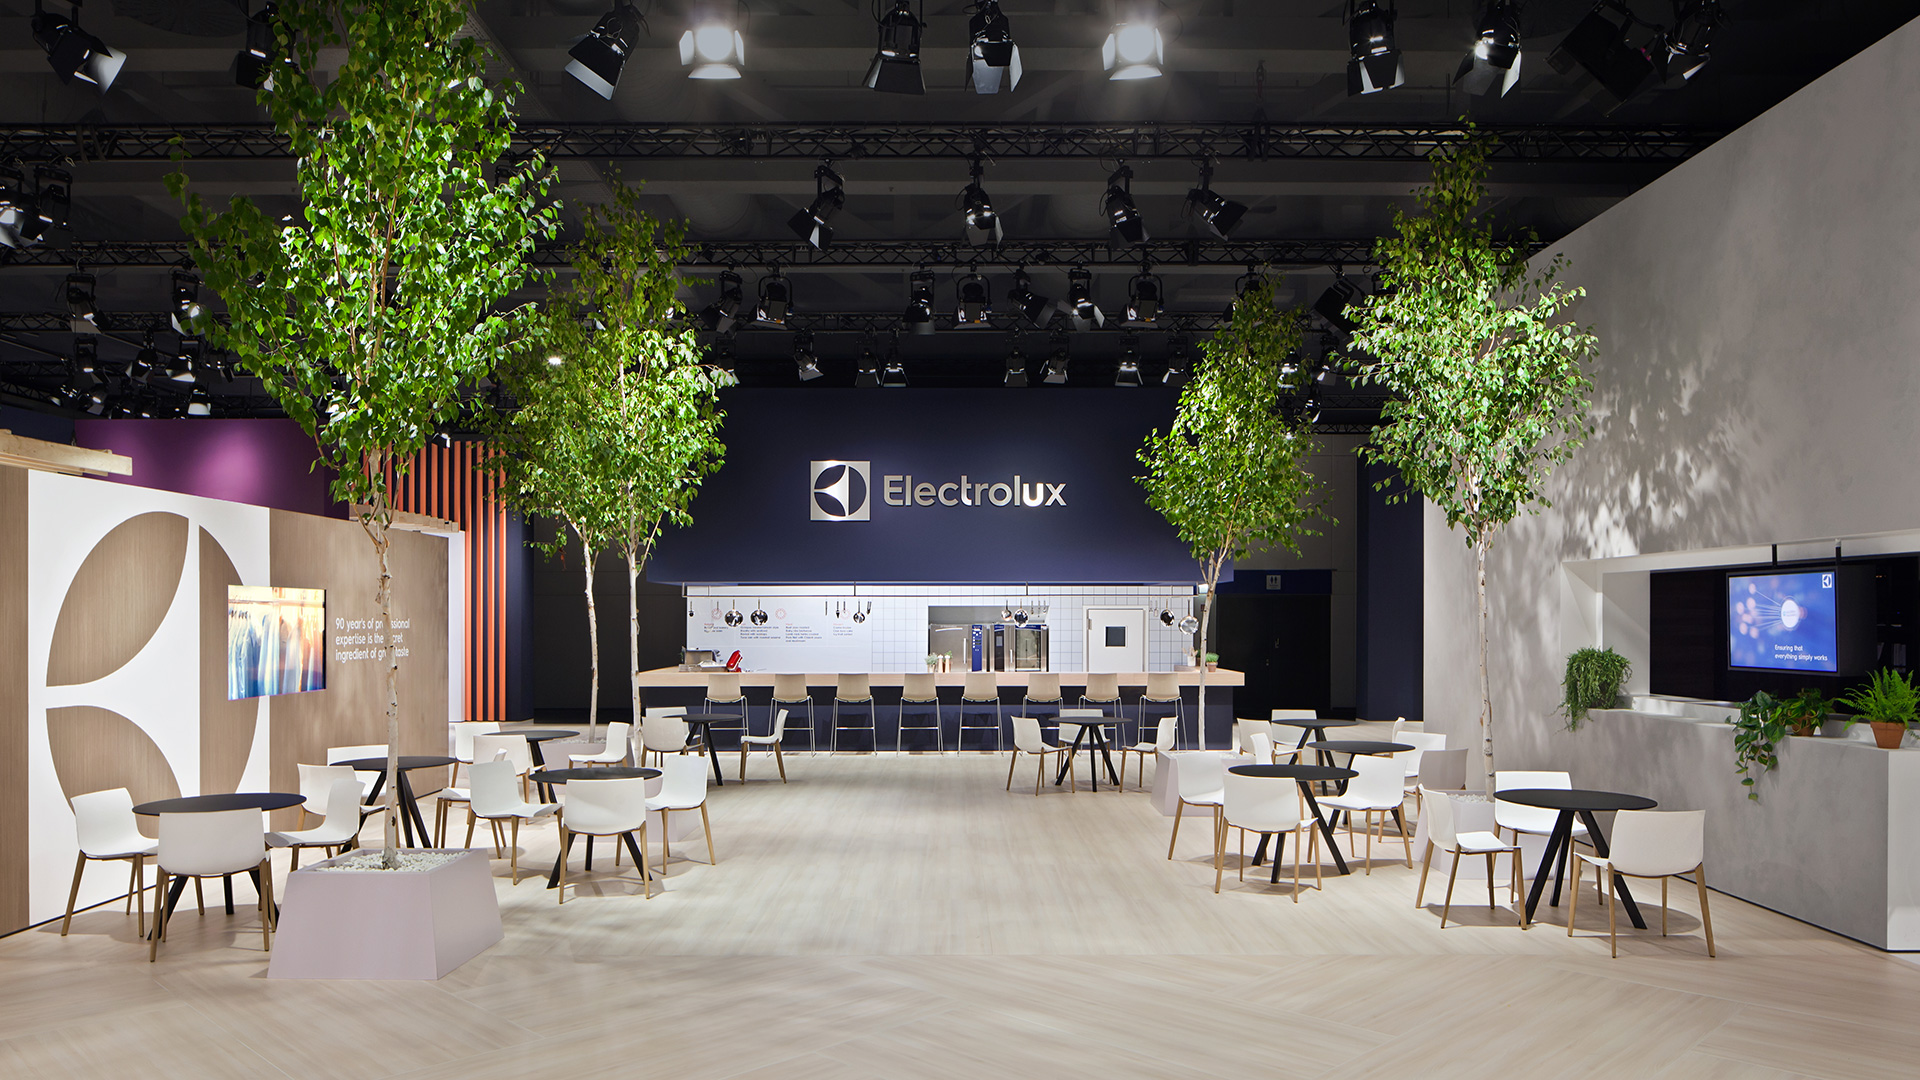 Dart stages the Electrolux fair stand at the IFA 2015